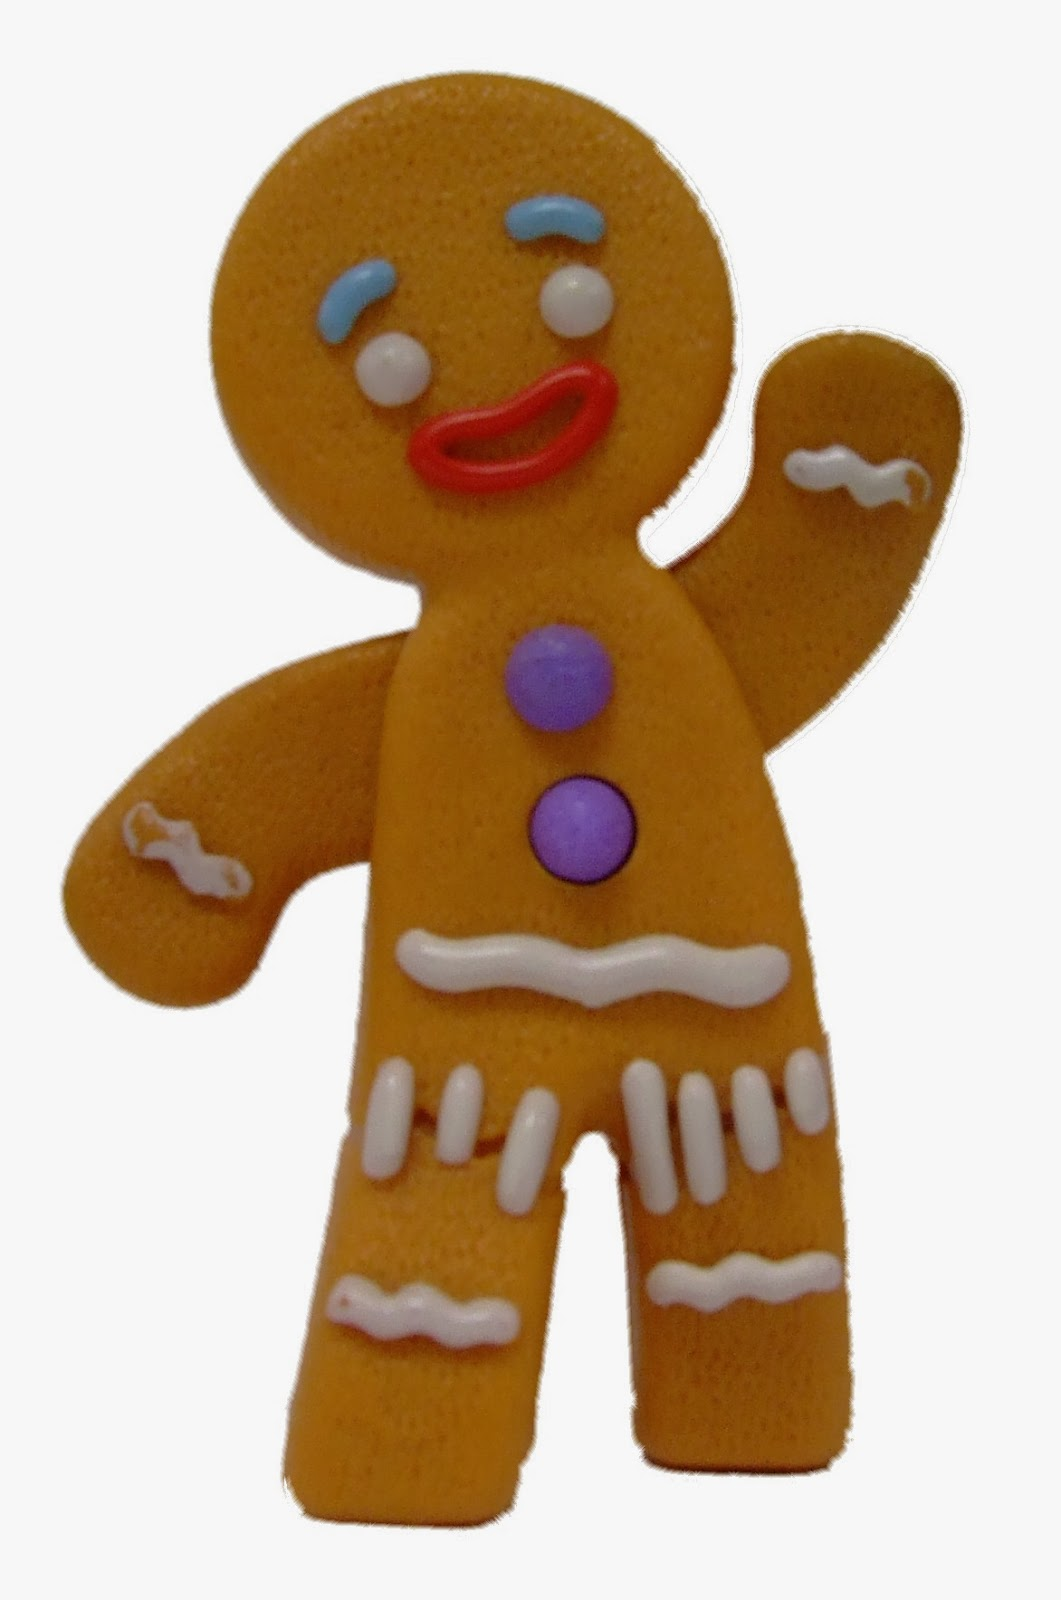 ... story, but nonetheless we shall call this person, The Gingerbread Man